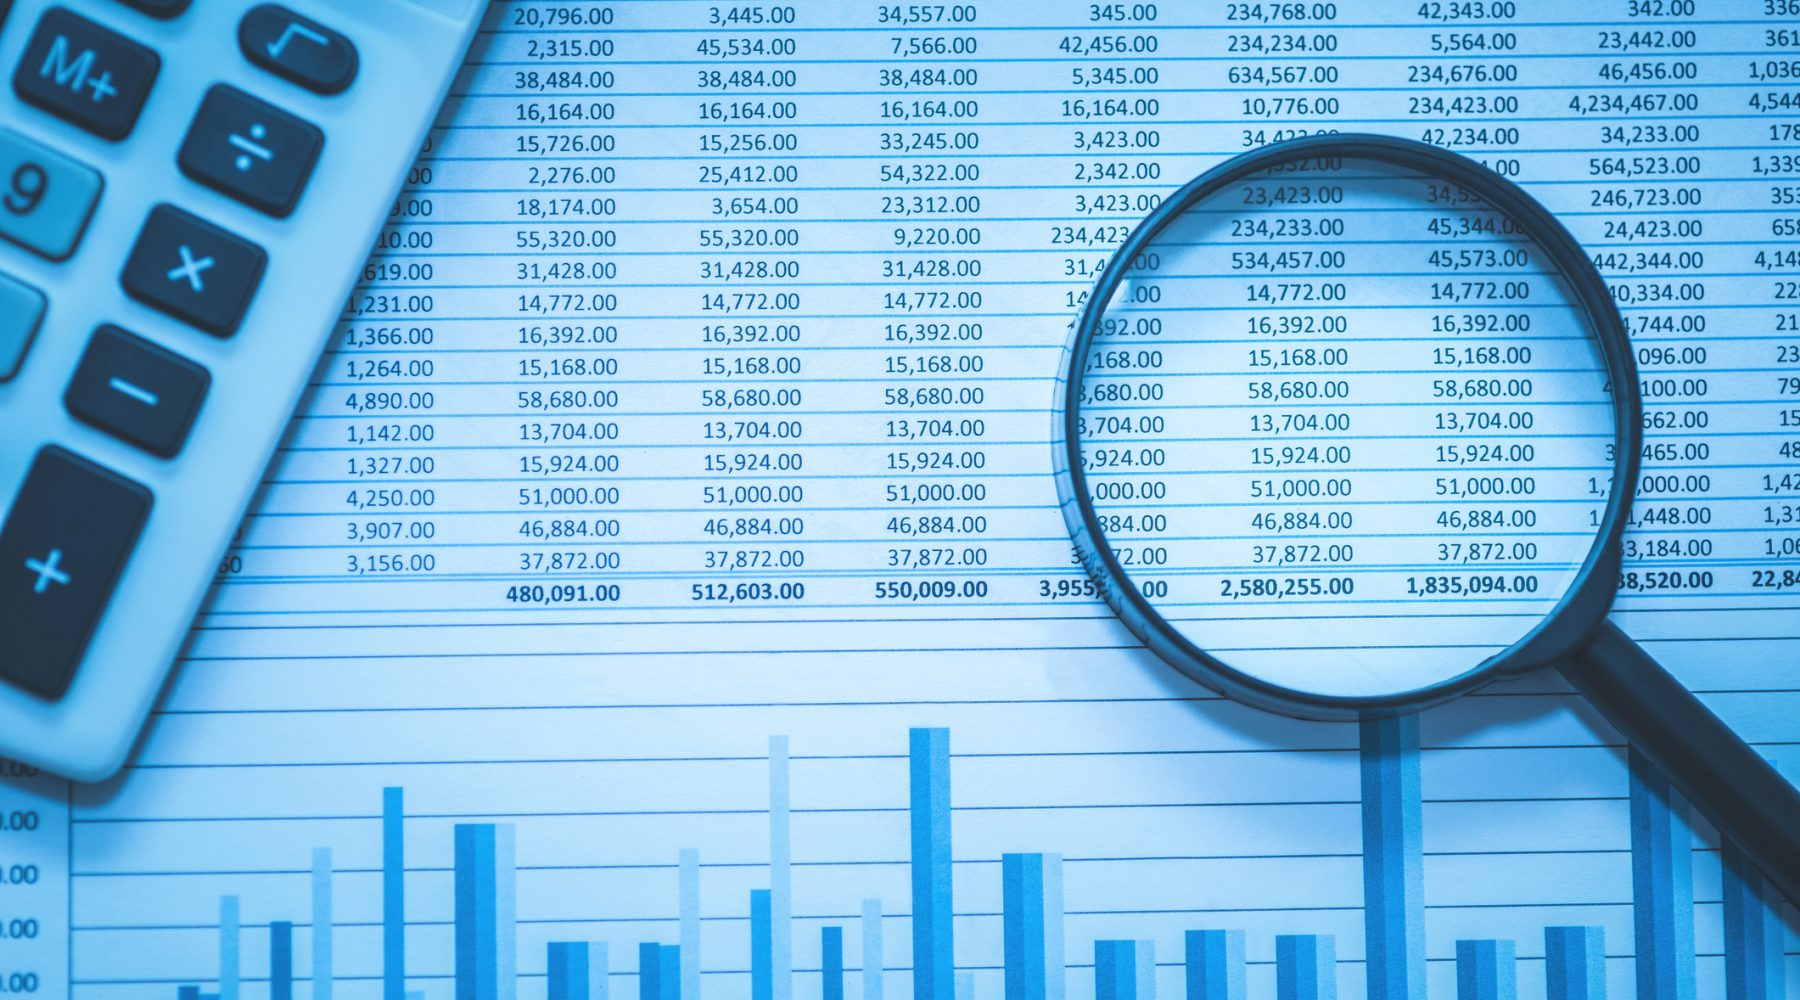 Forensic Accounting Team more than doubles in size